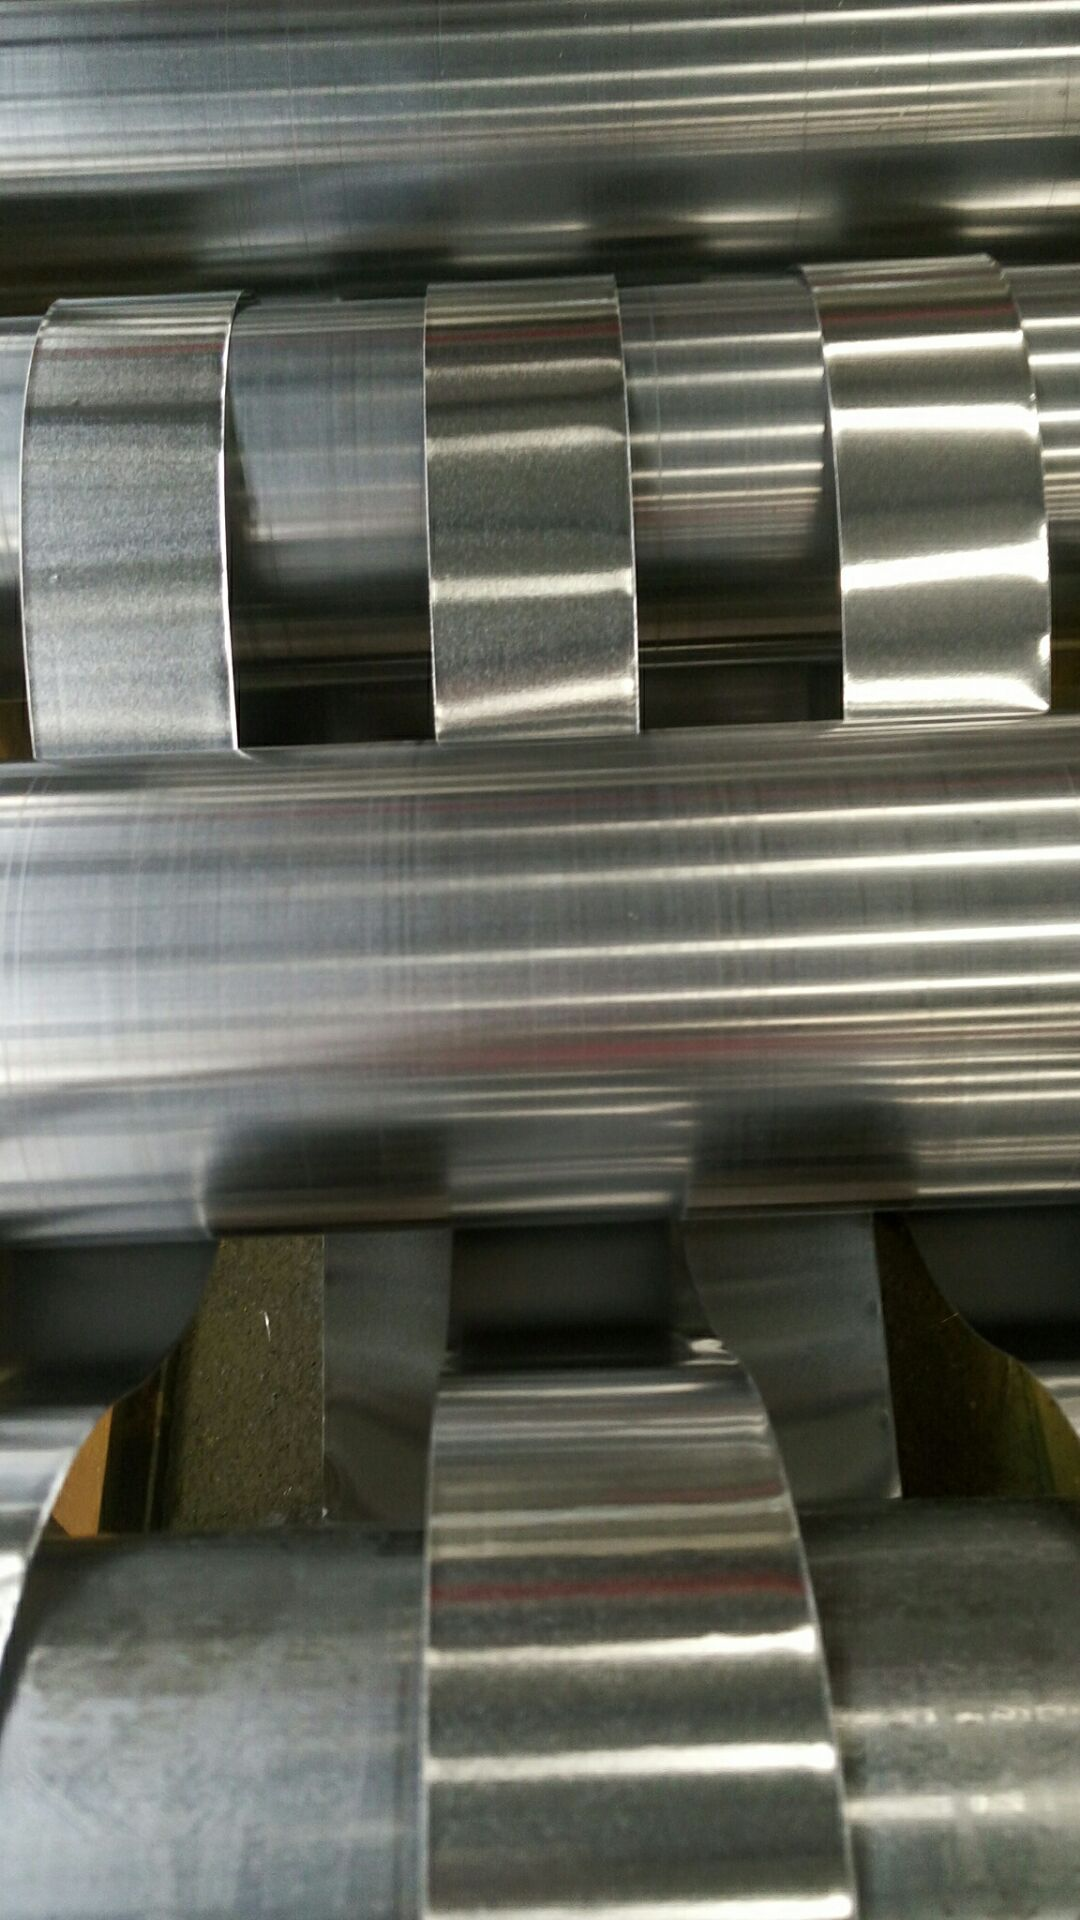 Packing Aluminum Jumbo Roll Foil